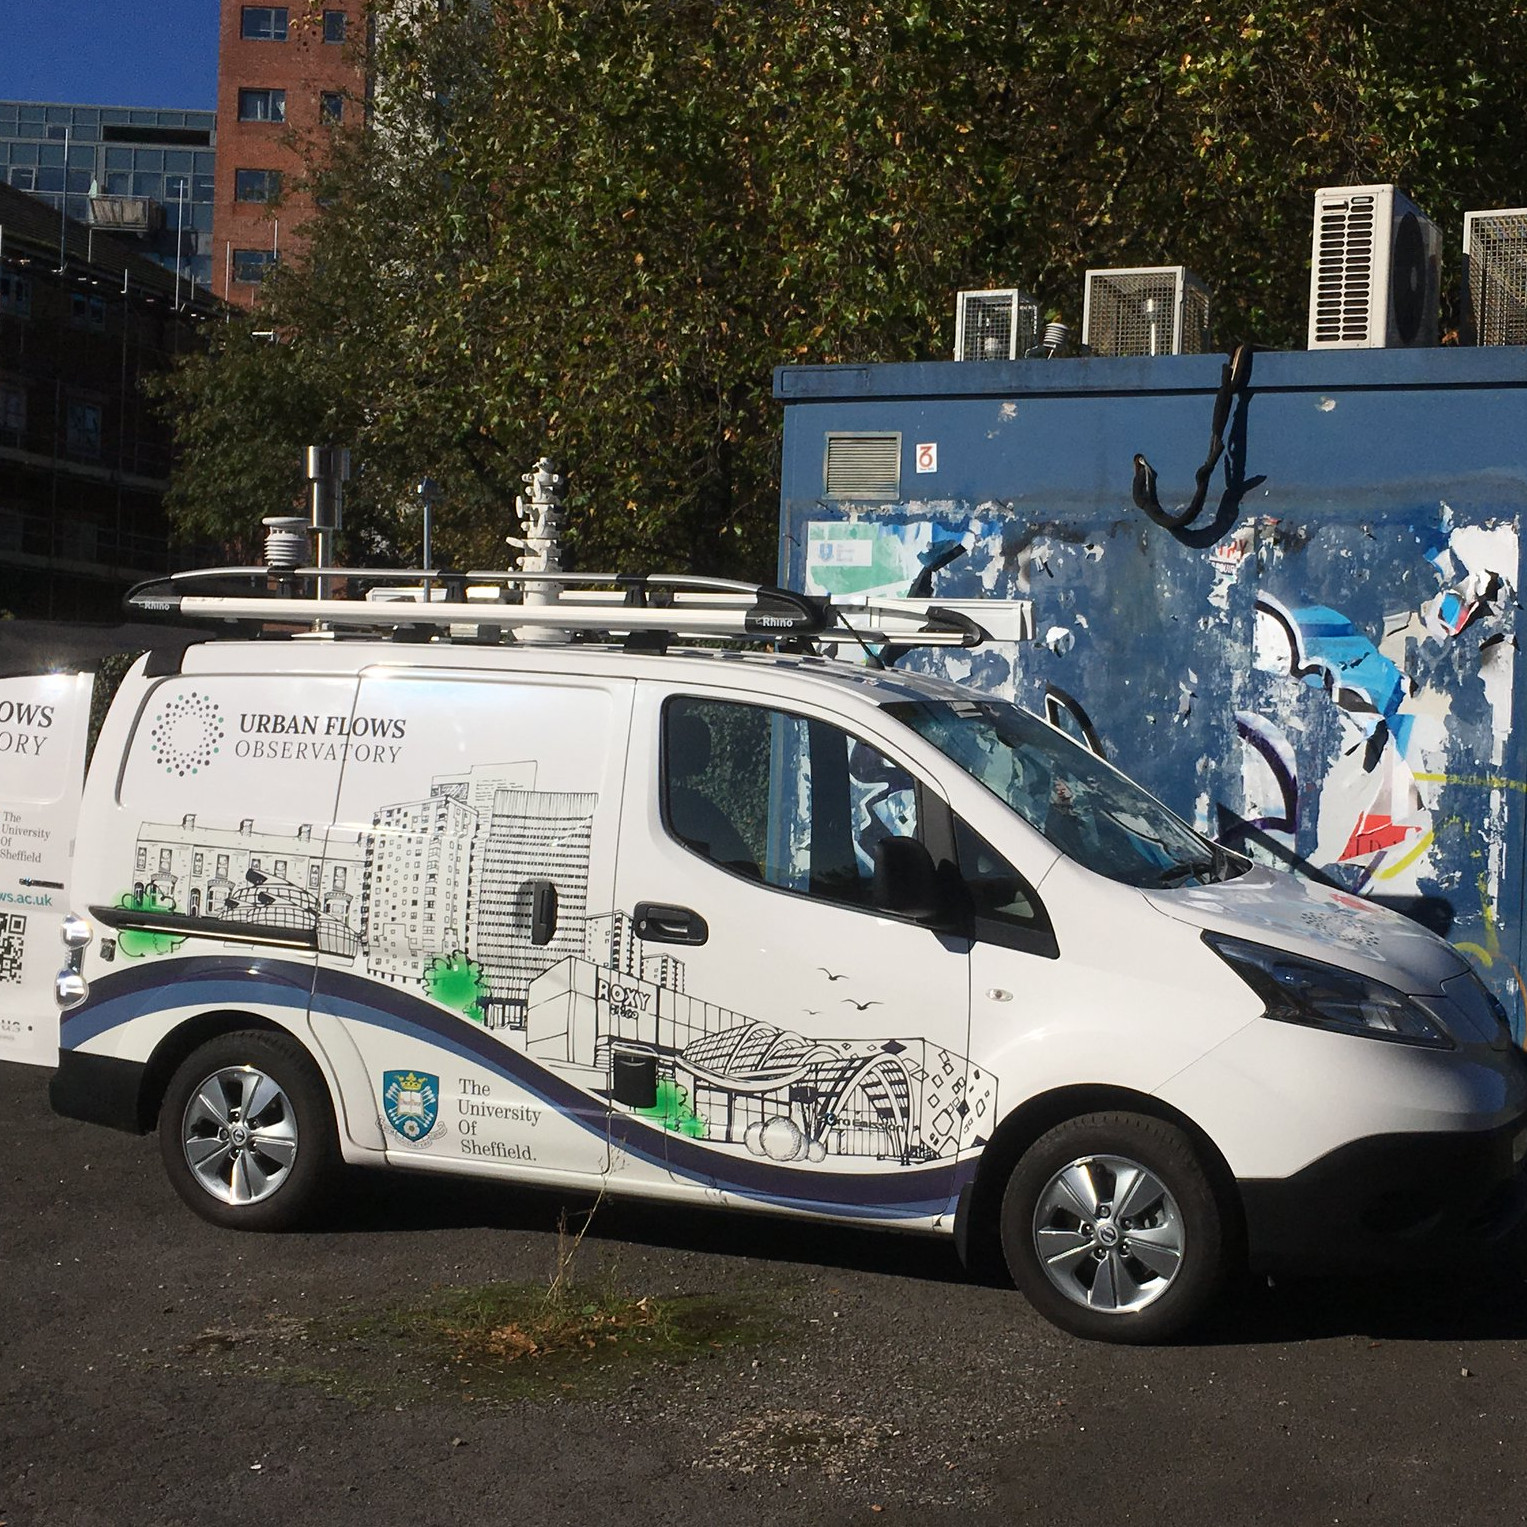 Sheffield Urban Flows Observatory Mobius Vehicle